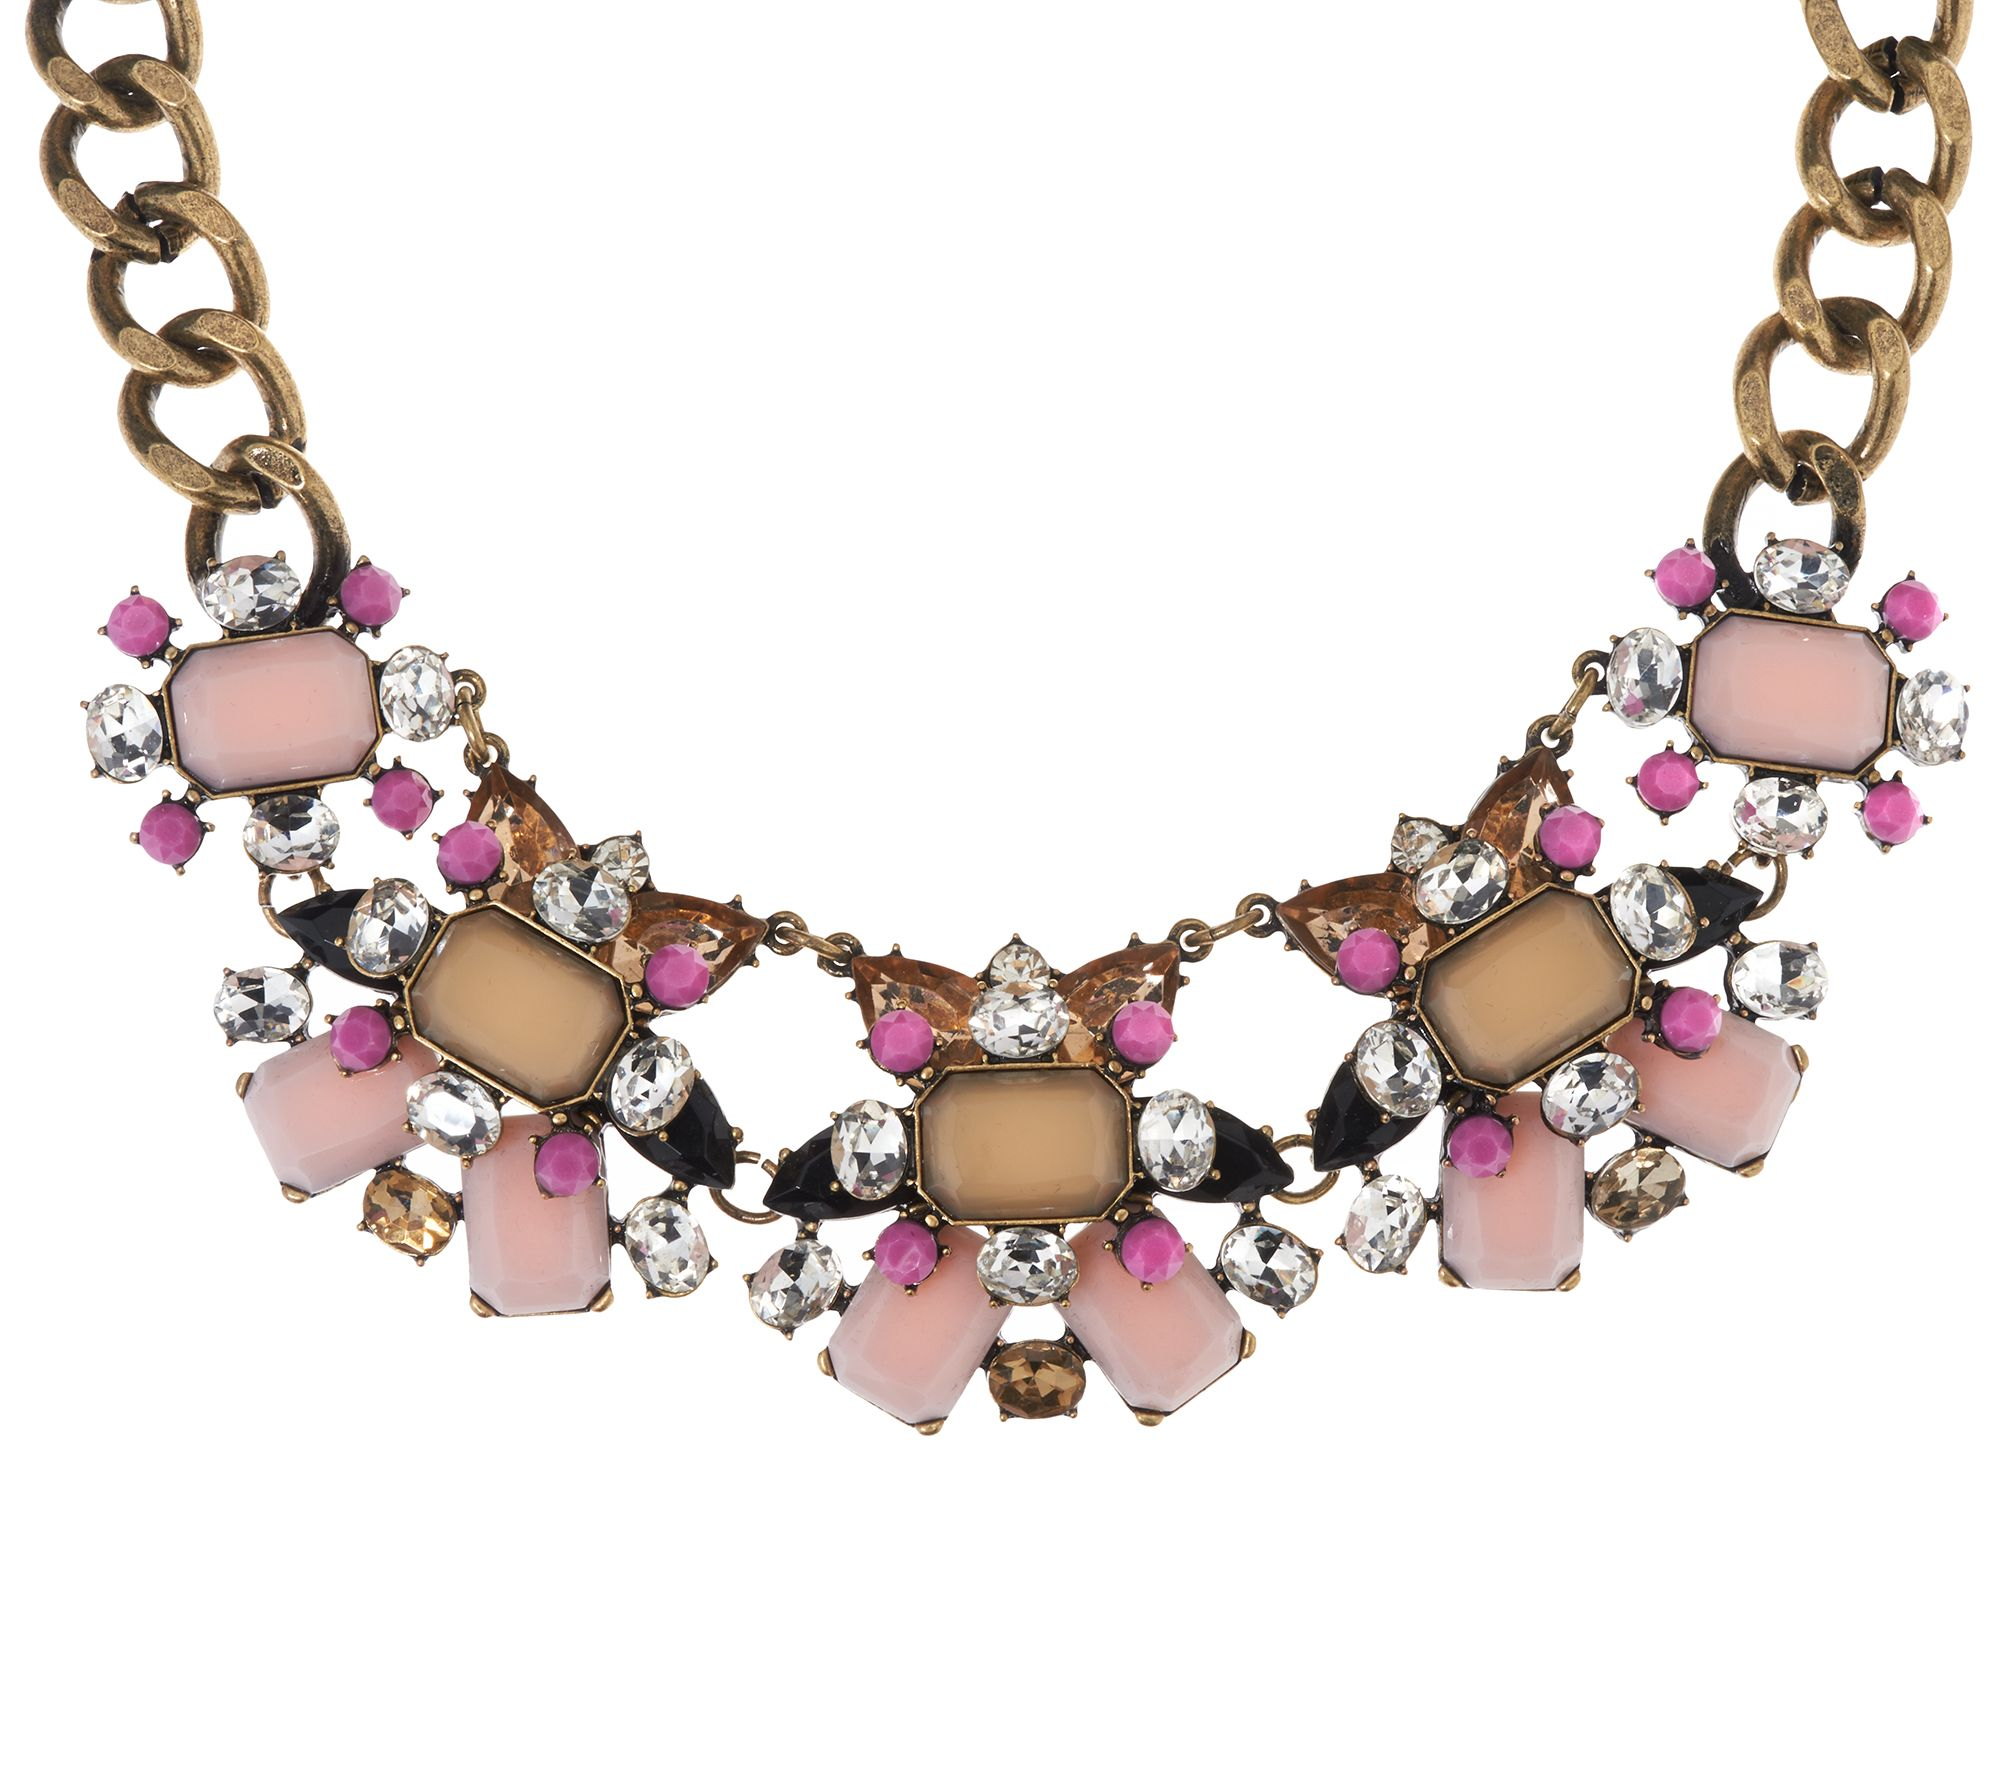 Joan rivers jeweled couture 18 statement necklace w 3 for Joan rivers jewelry necklaces